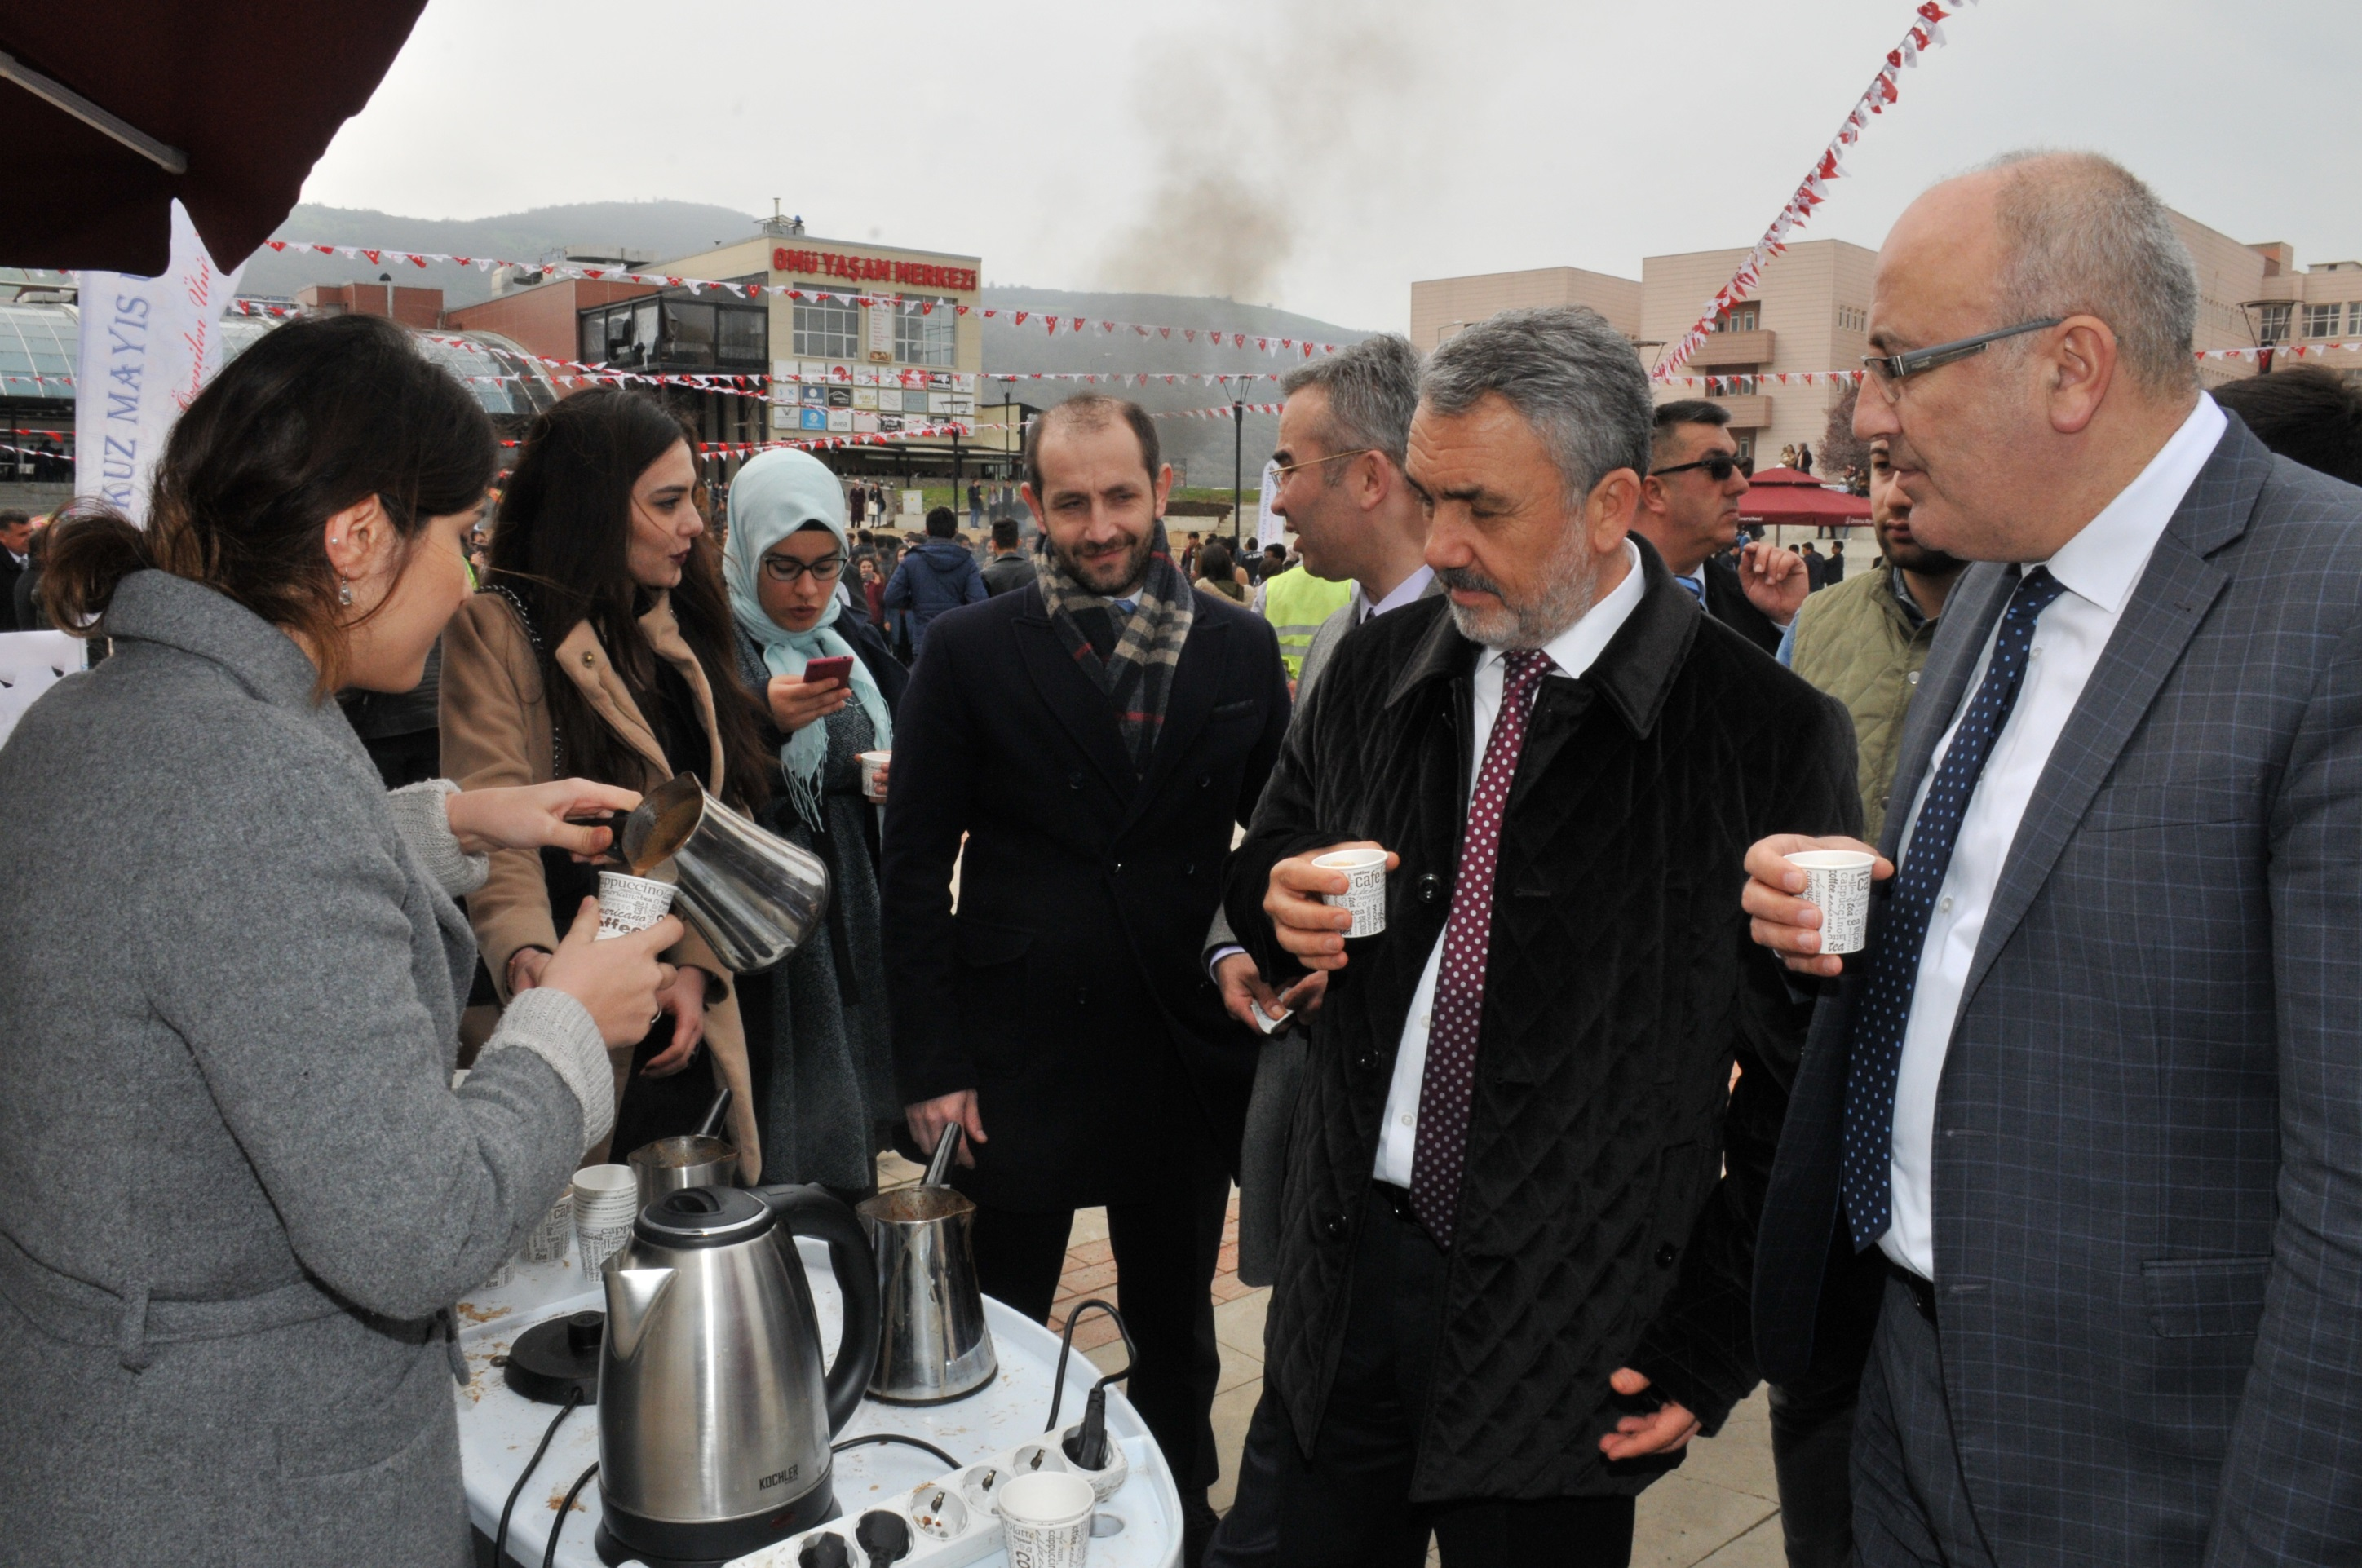 http://www.omu.edu.tr/sites/default/files/files/omu_family_enthusiastically_celebrated_newroz/dsc_0402.jpg